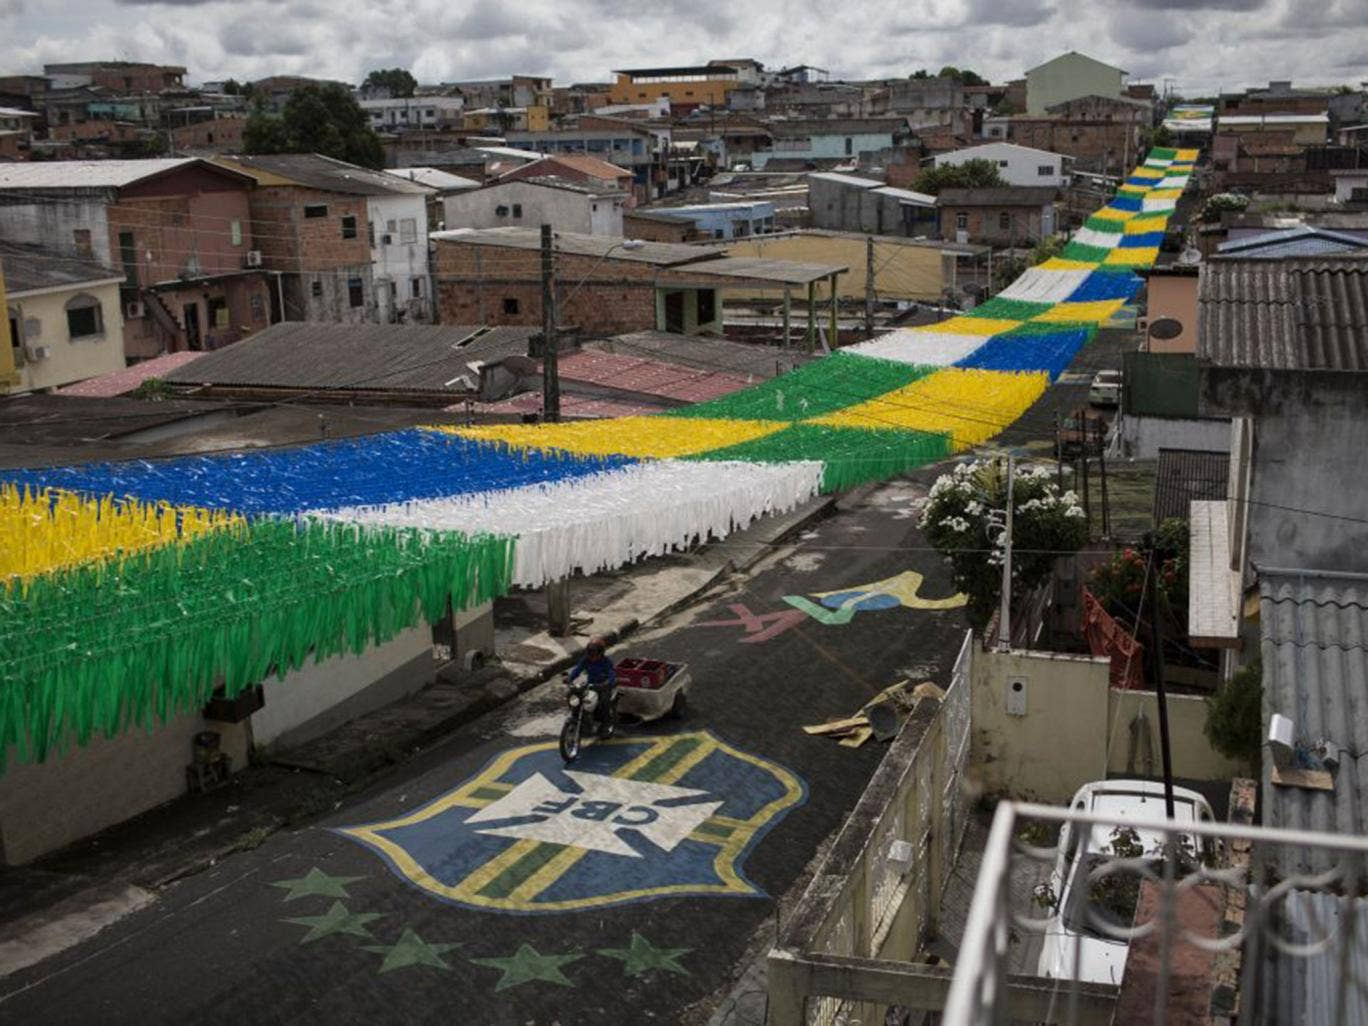 The streets of Manaus have been decorated ahead of the World Cup